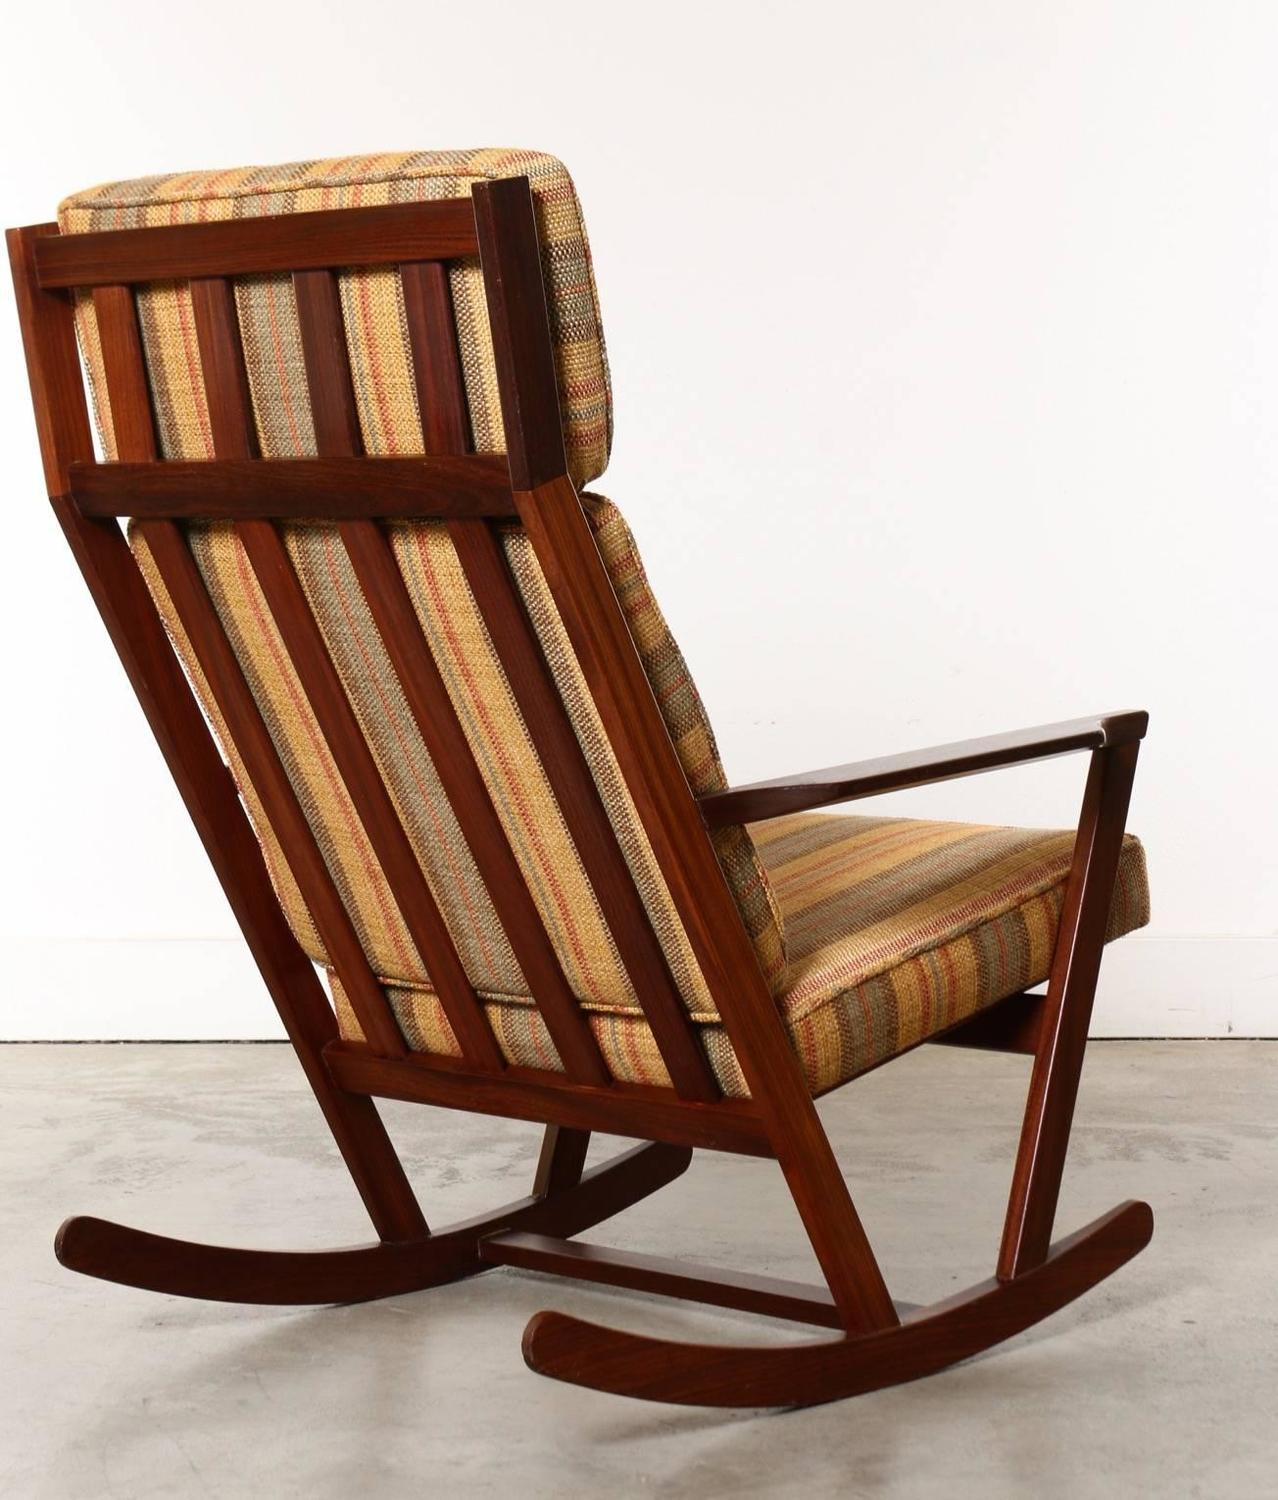 wooden rocking chair cushion set prospera massage danish modern with cushions designed